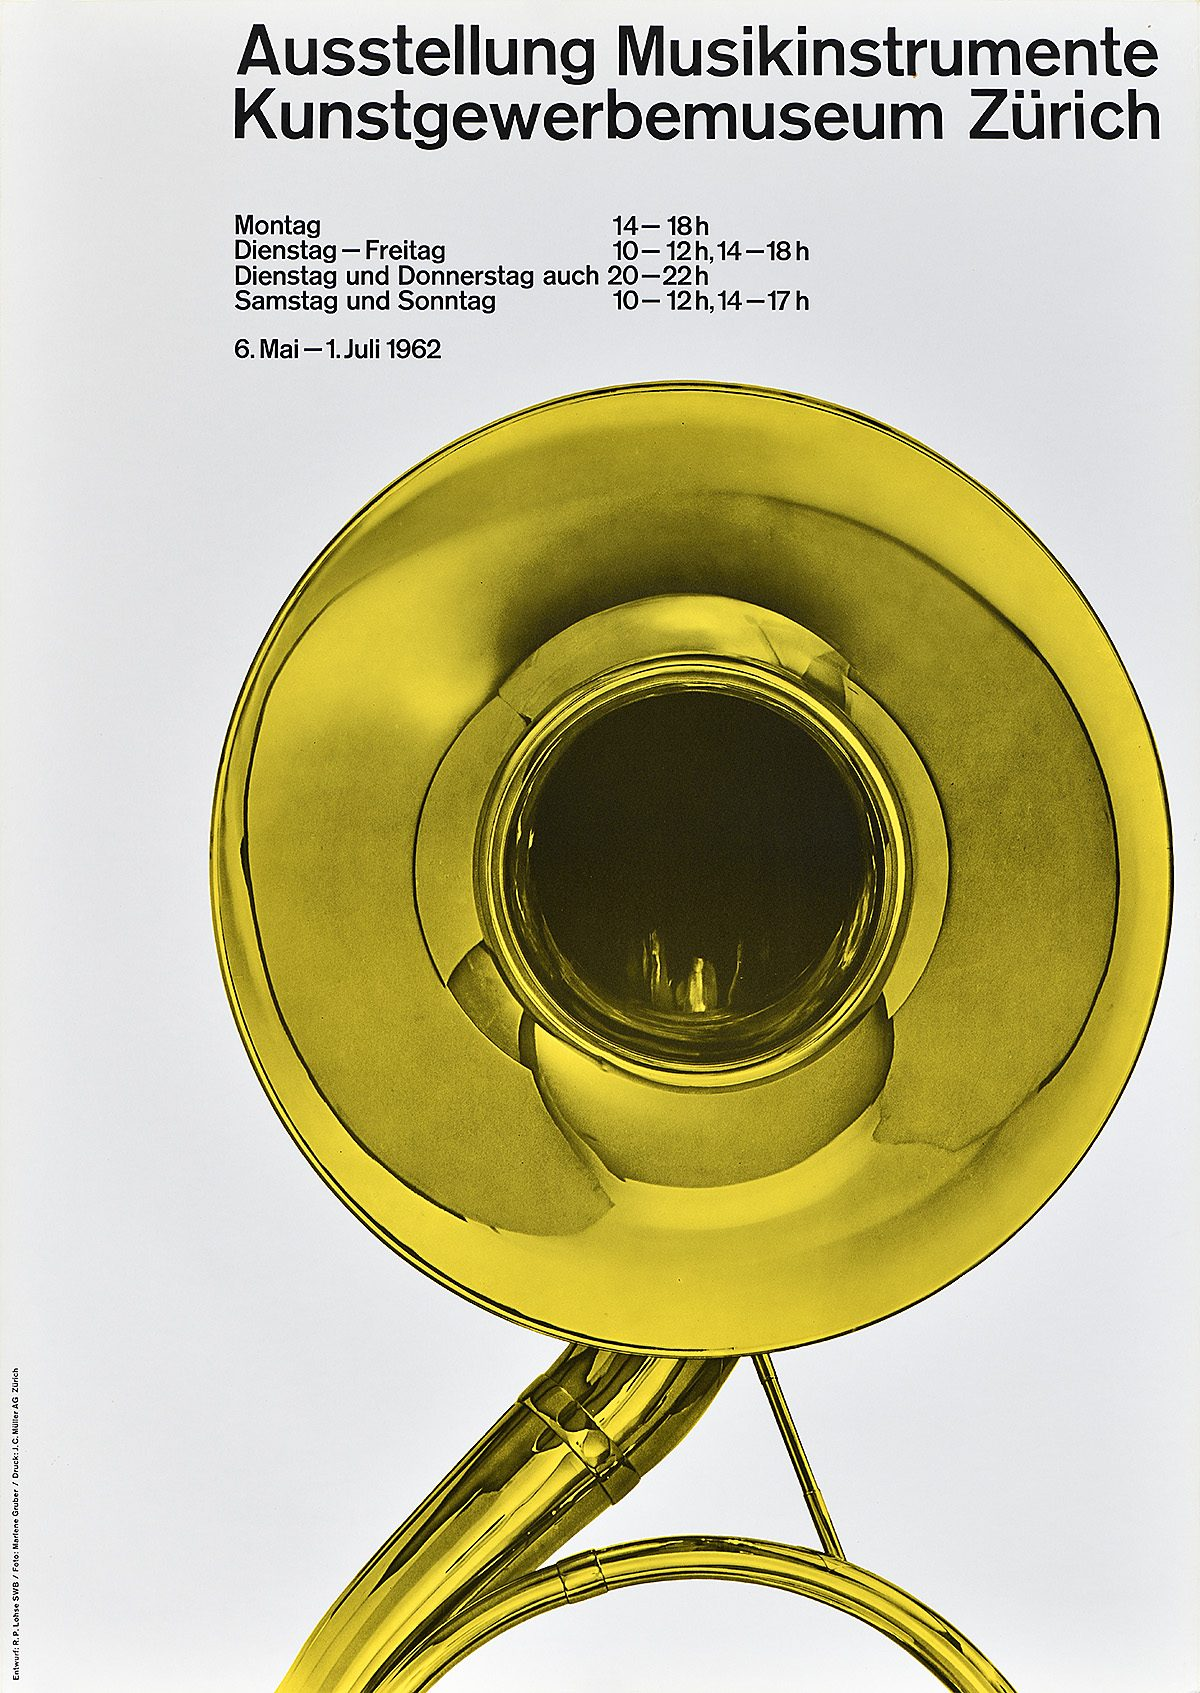 poster for a music festival with an image of a french horn